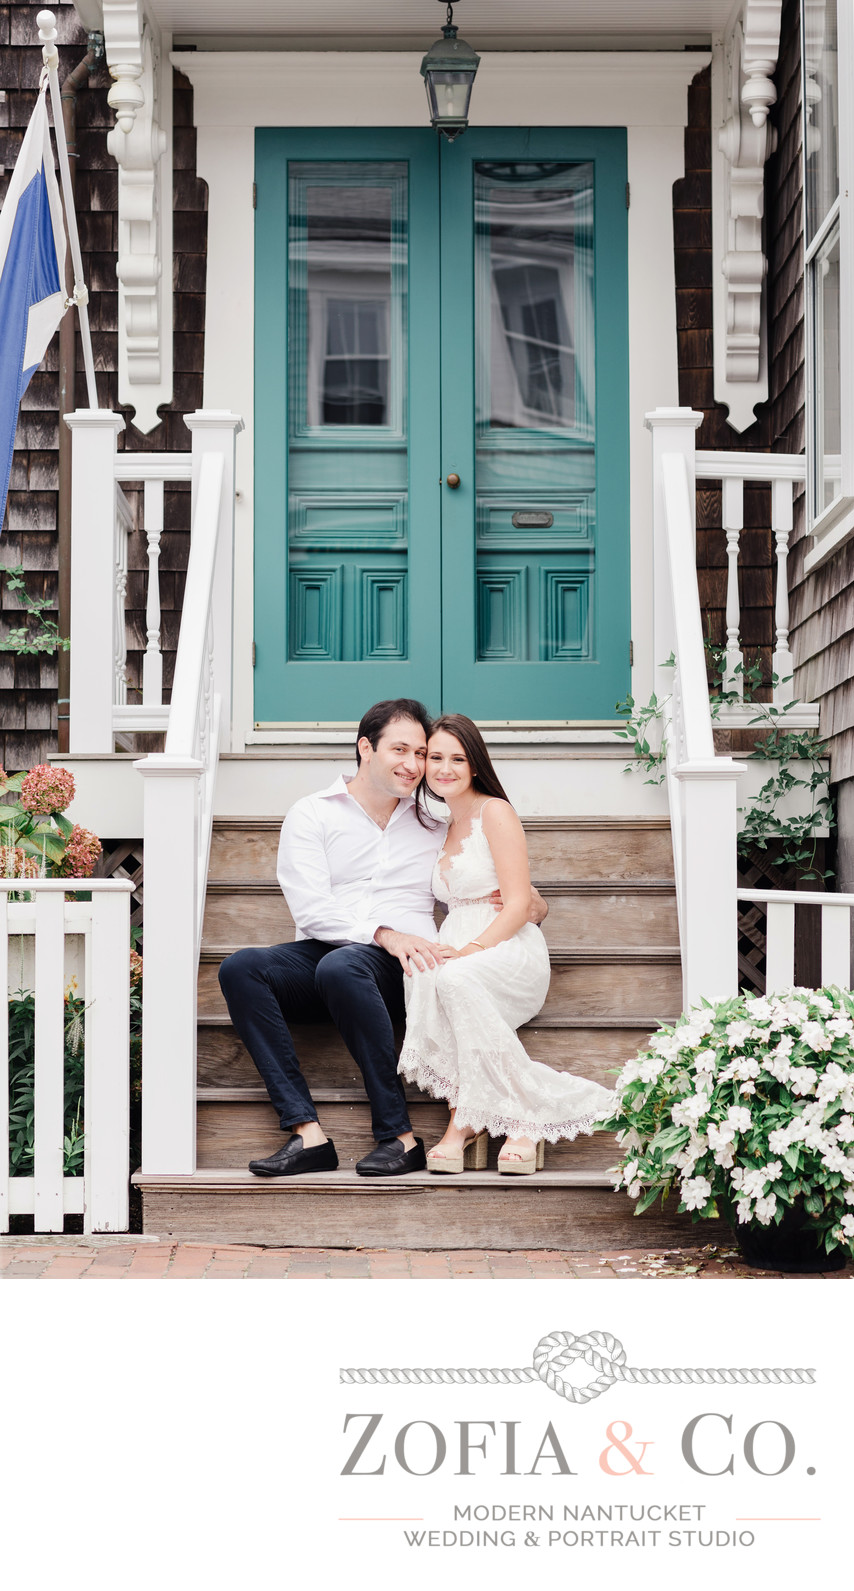 downtown nantucket blue door cottage engaged couple